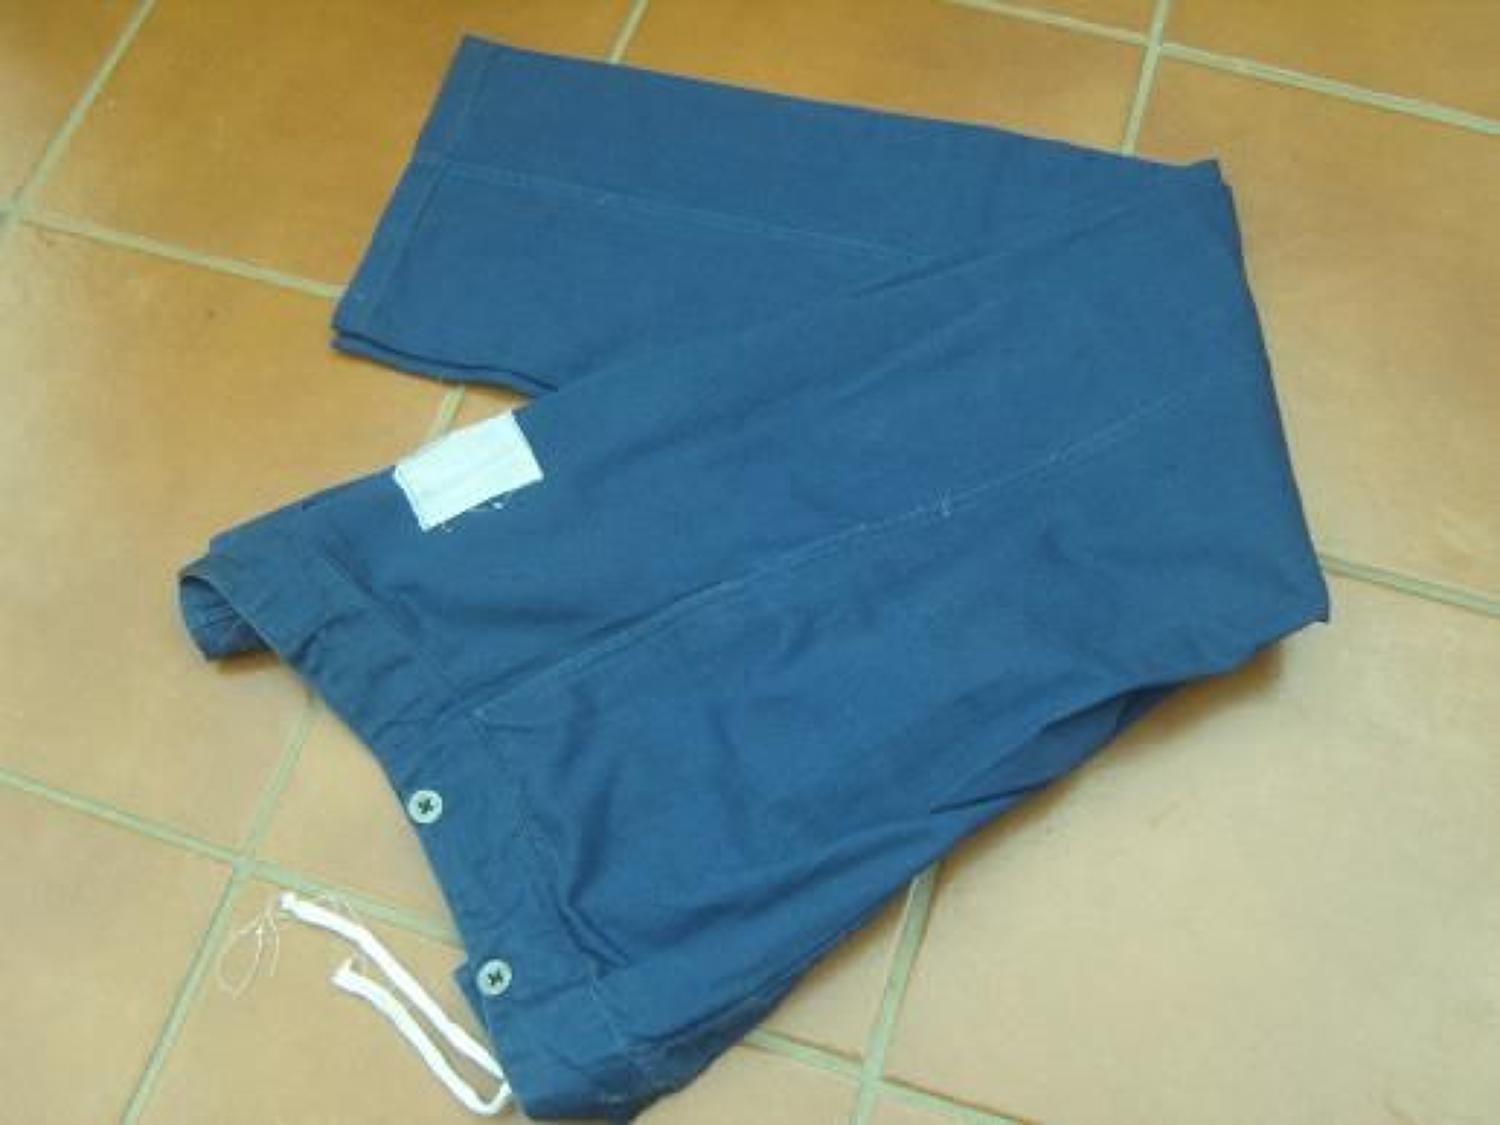 WW2 HOSPITAL BLUE TROUSERS dated 1941